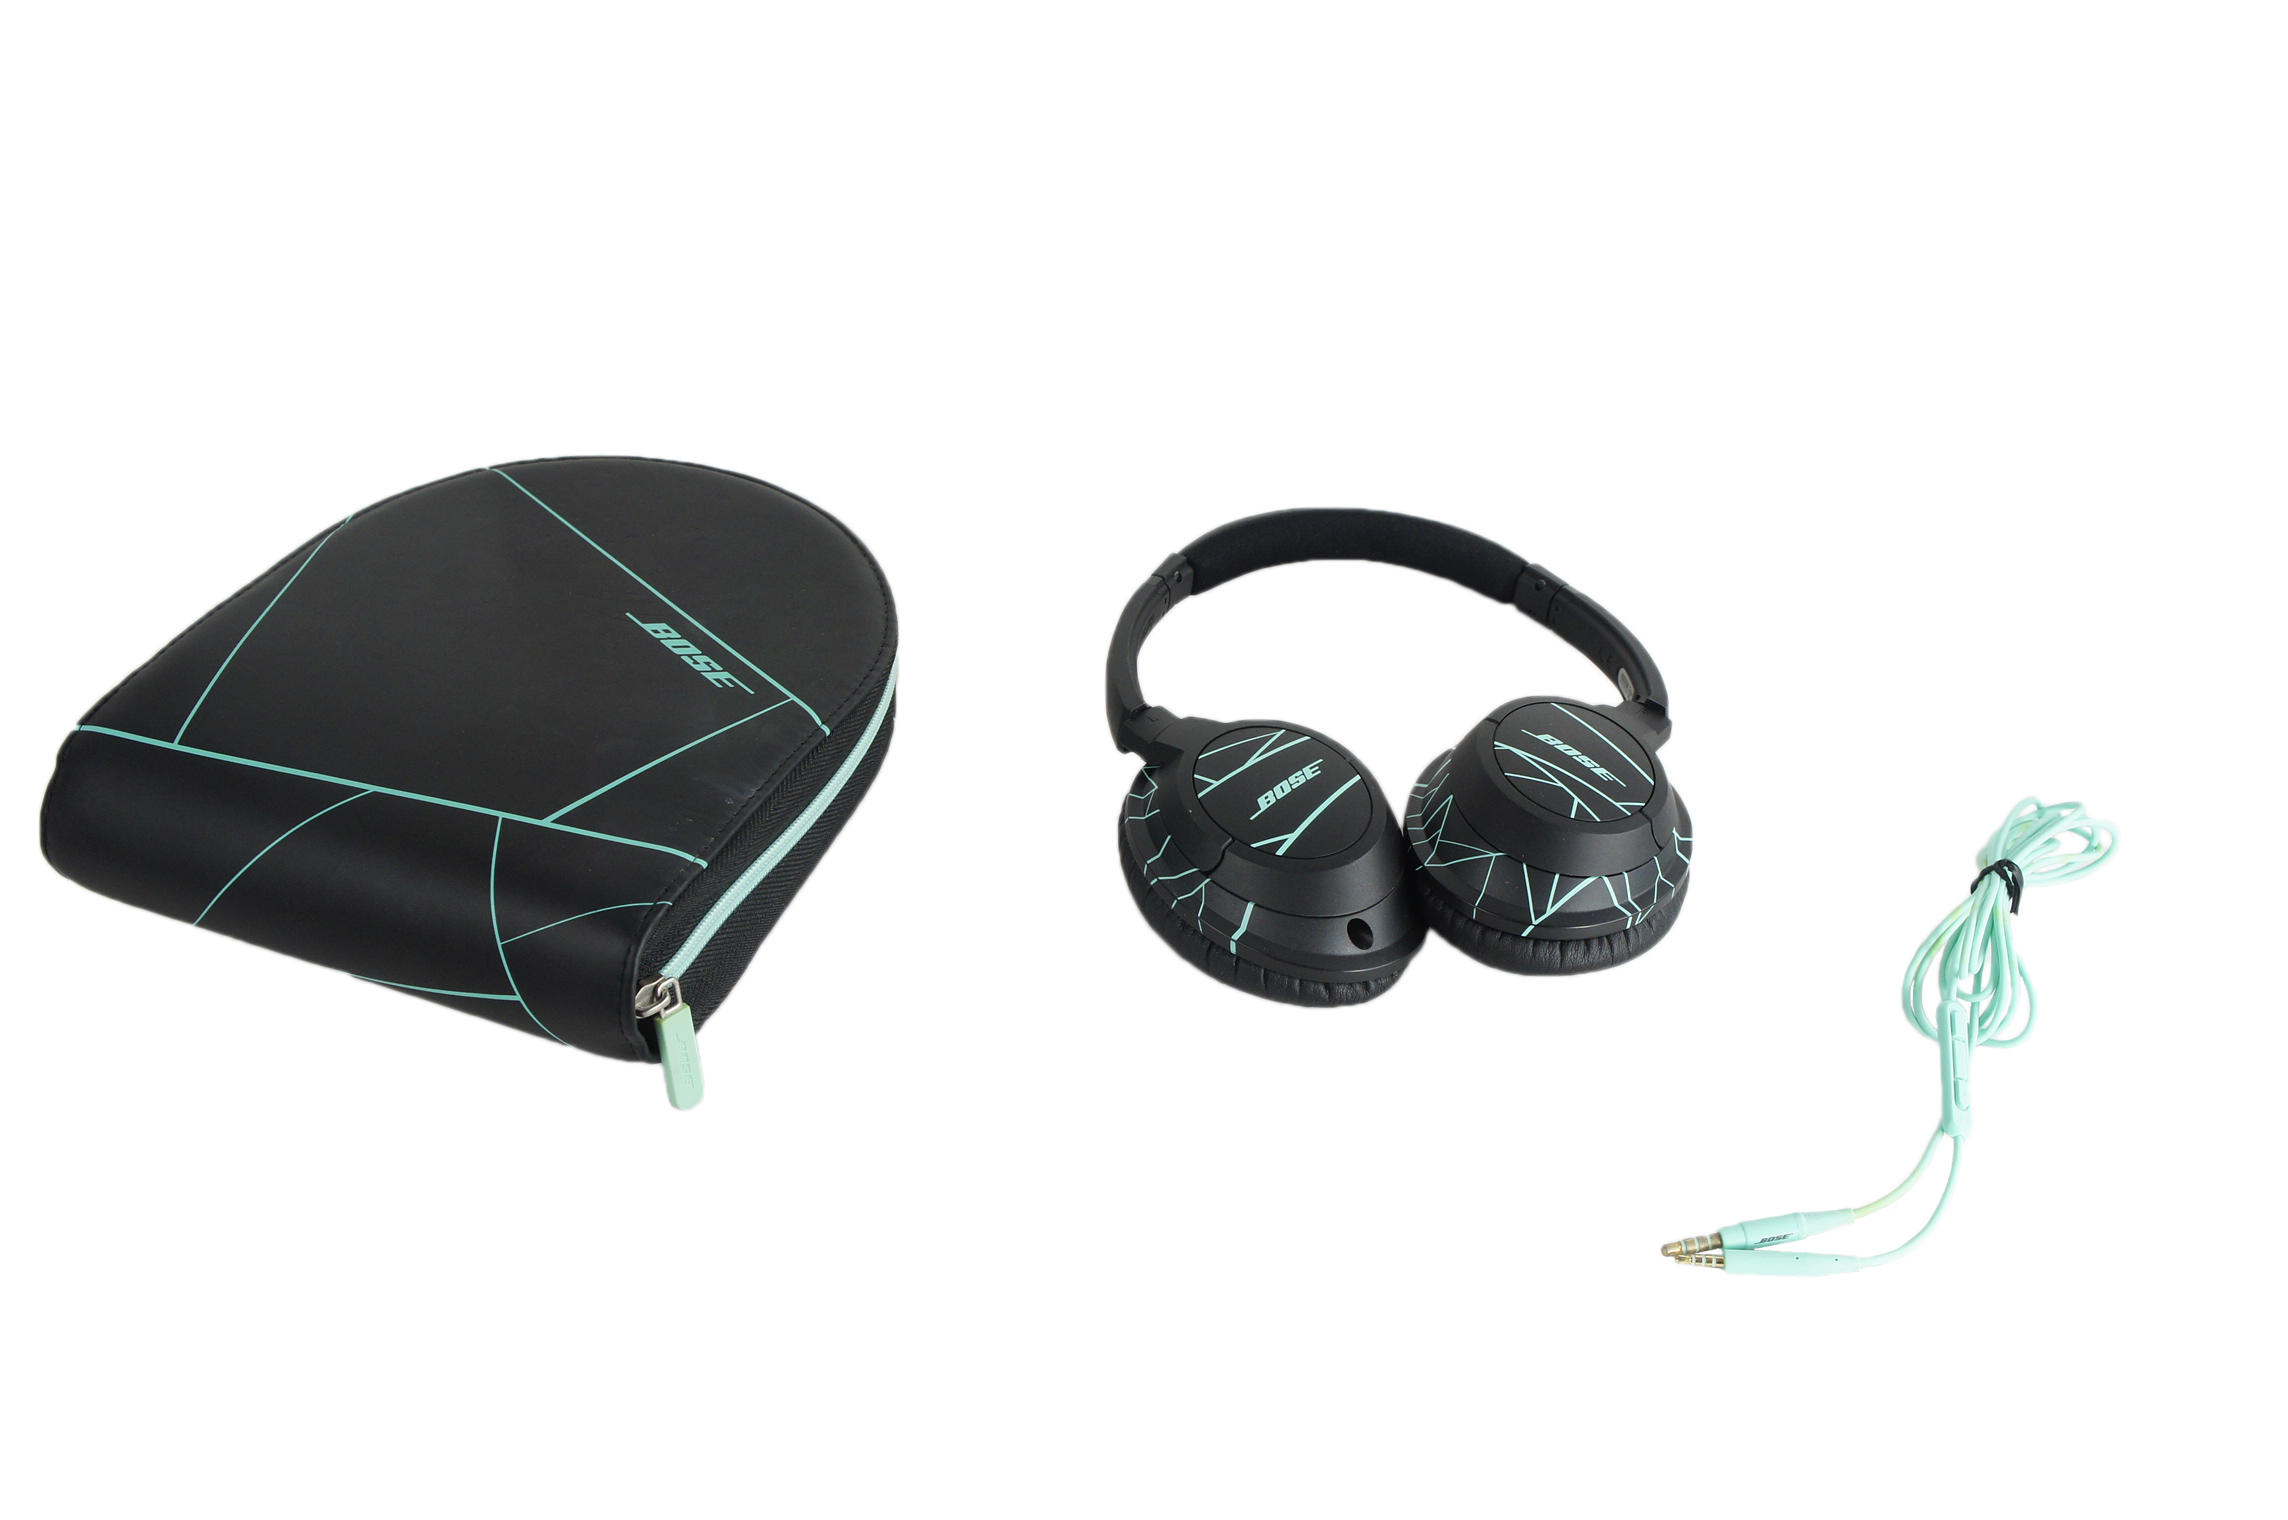 Bose_SoundTrue_Kopfhorer_Green_Edition_02